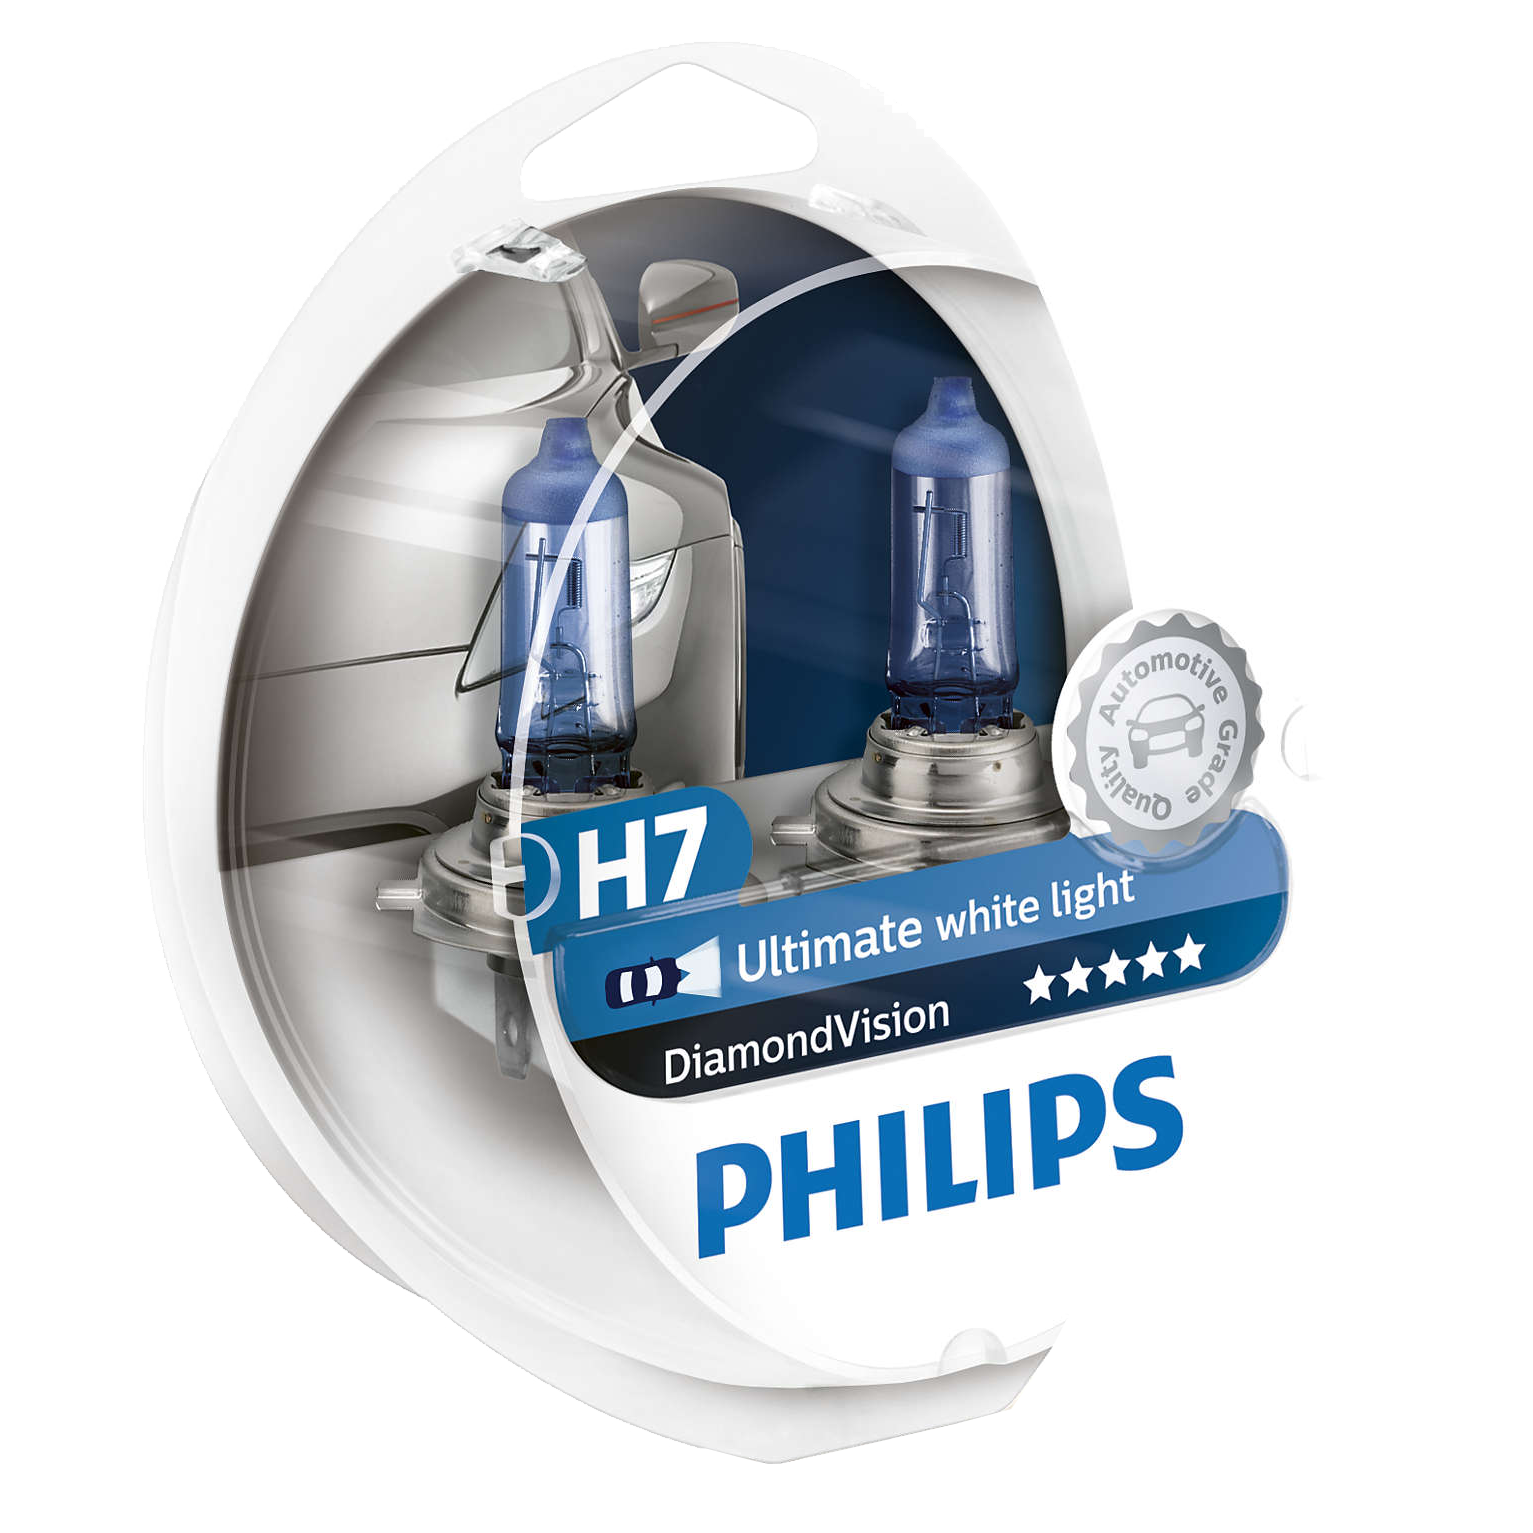 H7 Philips Diamond Vision 12V 55W 477 Halogen Bulbs (Pair)